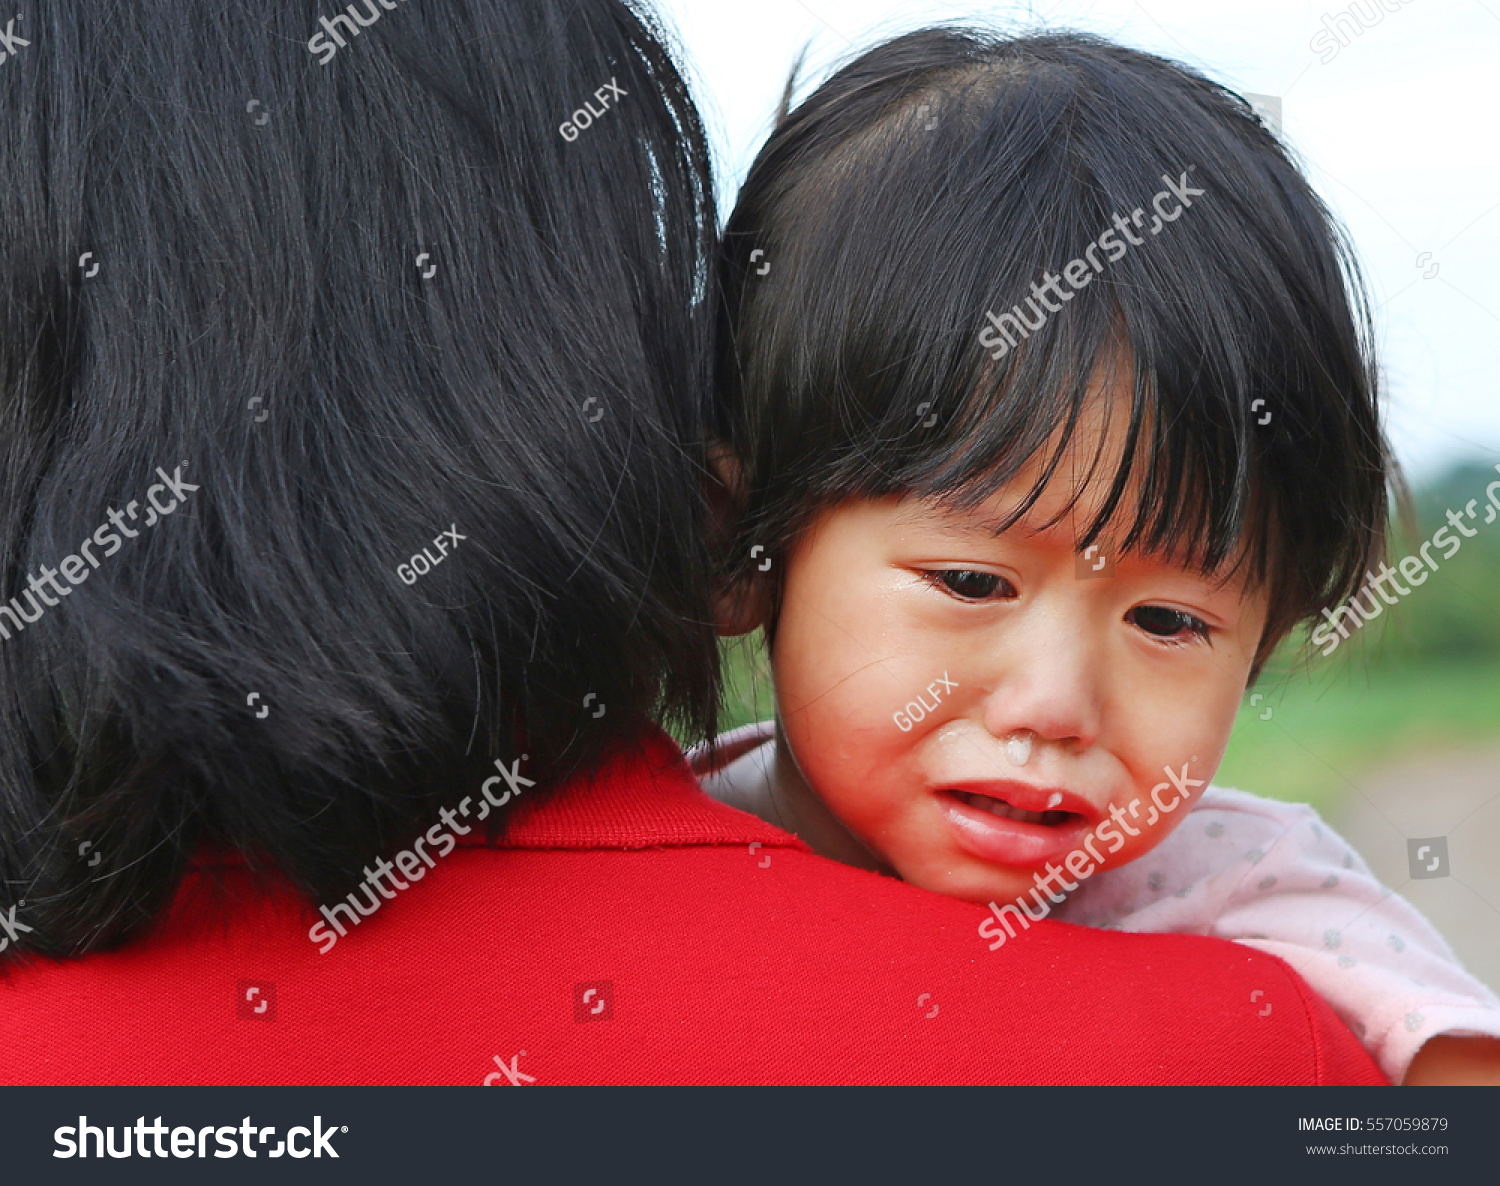 af33f0bc02dc Royalty-free Close up asian baby girl crying on hug…  557059879 ...